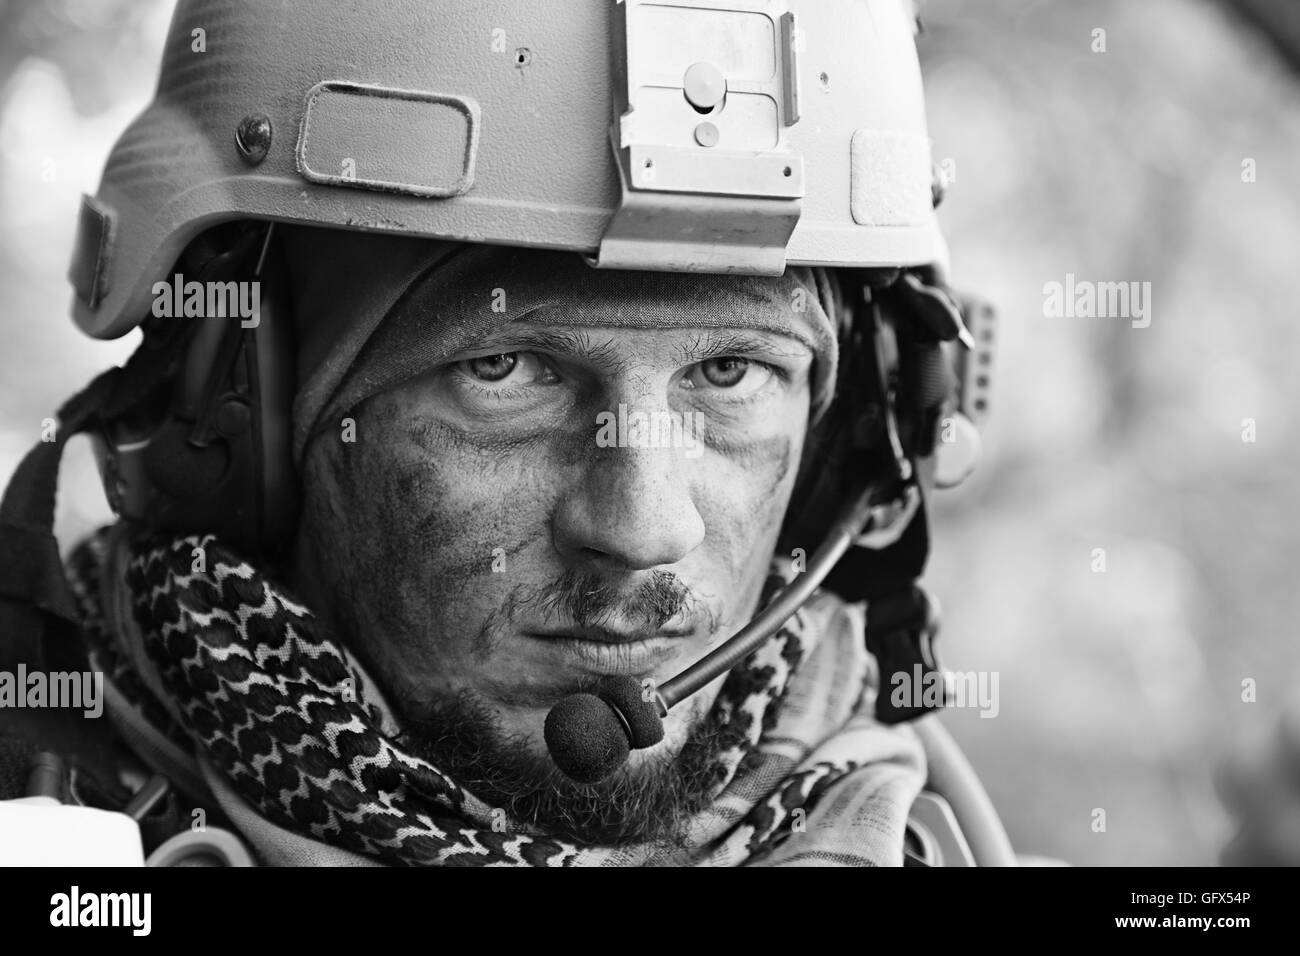 e6490eee255f Army Green Black and White Stock Photos   Images - Alamy